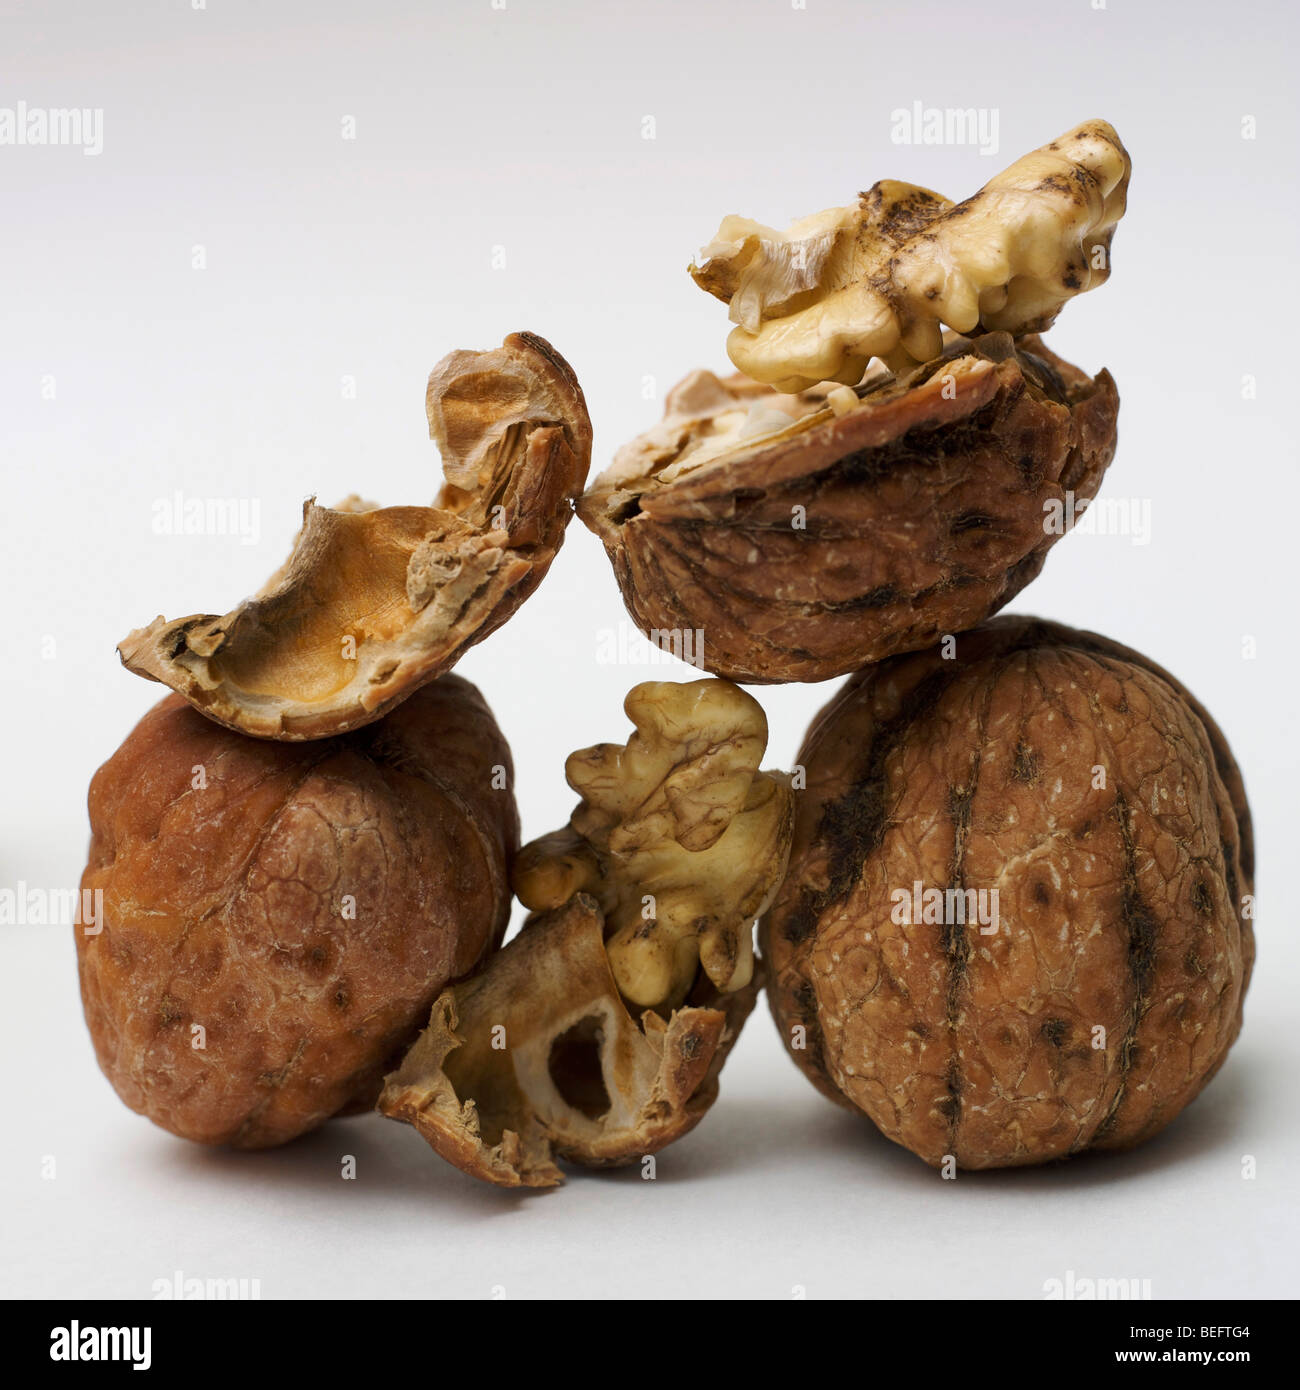 Pile of walnuts - Stock Image